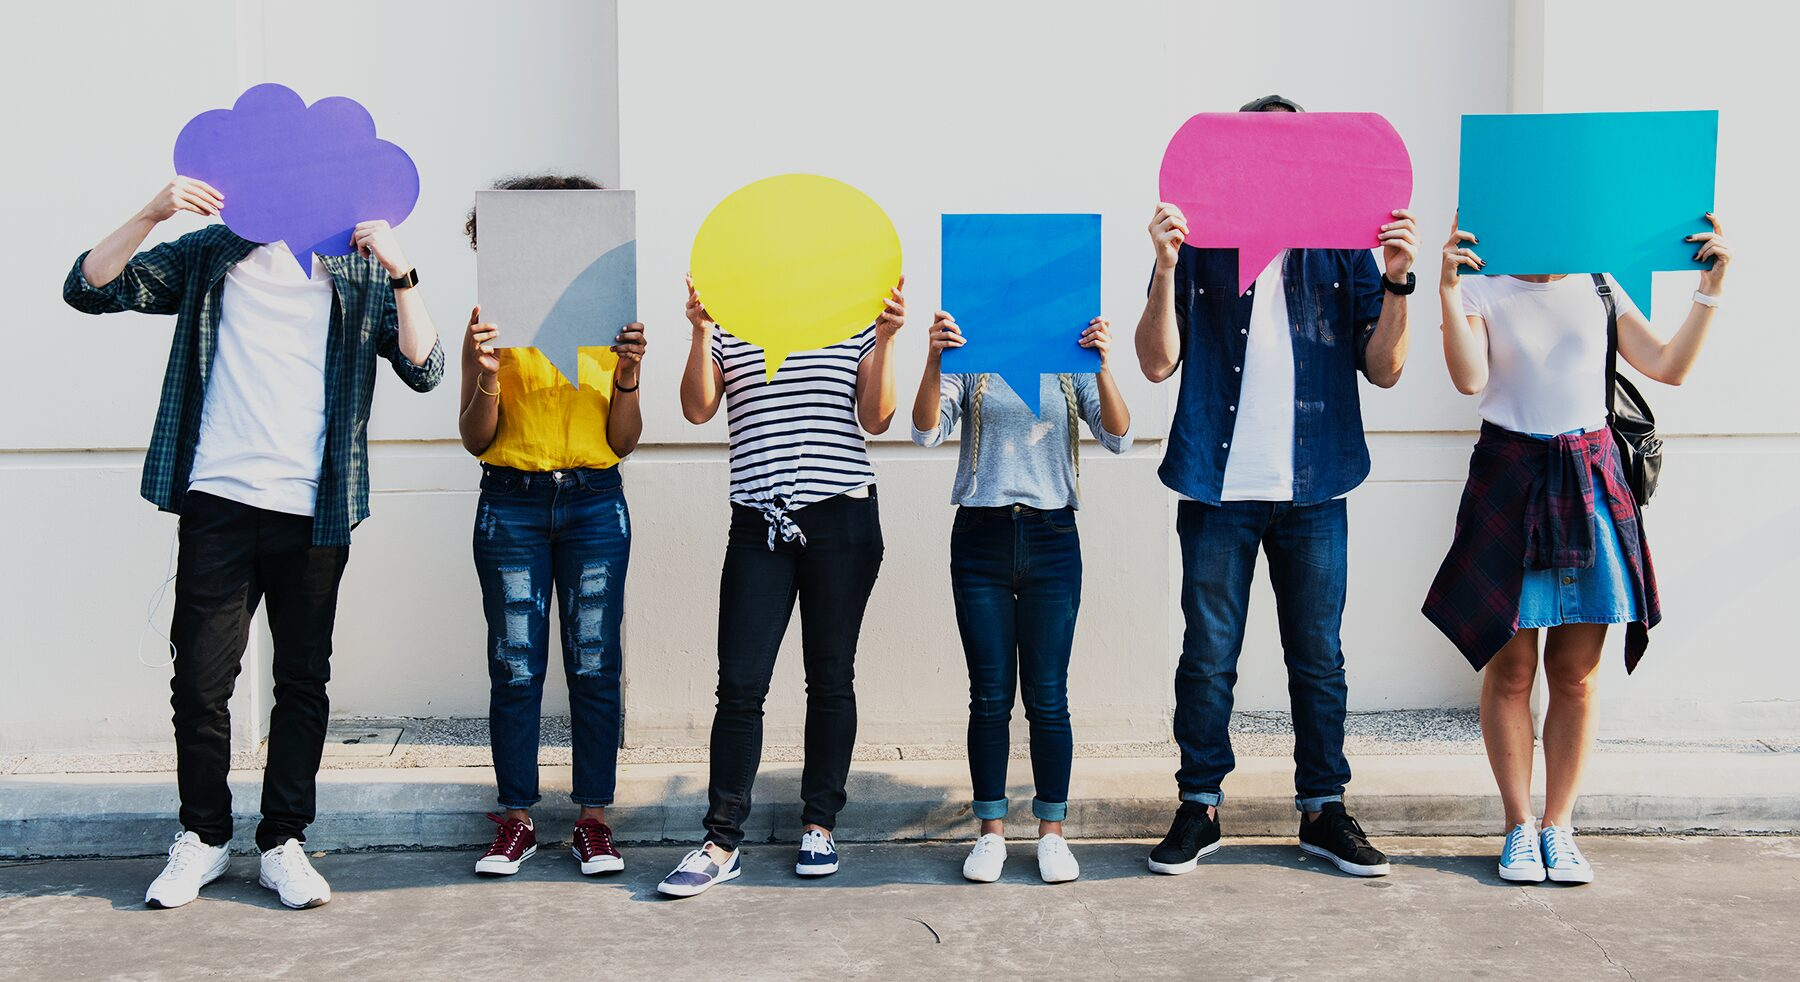 Marketing To Generation Z For Student Housing In 2021